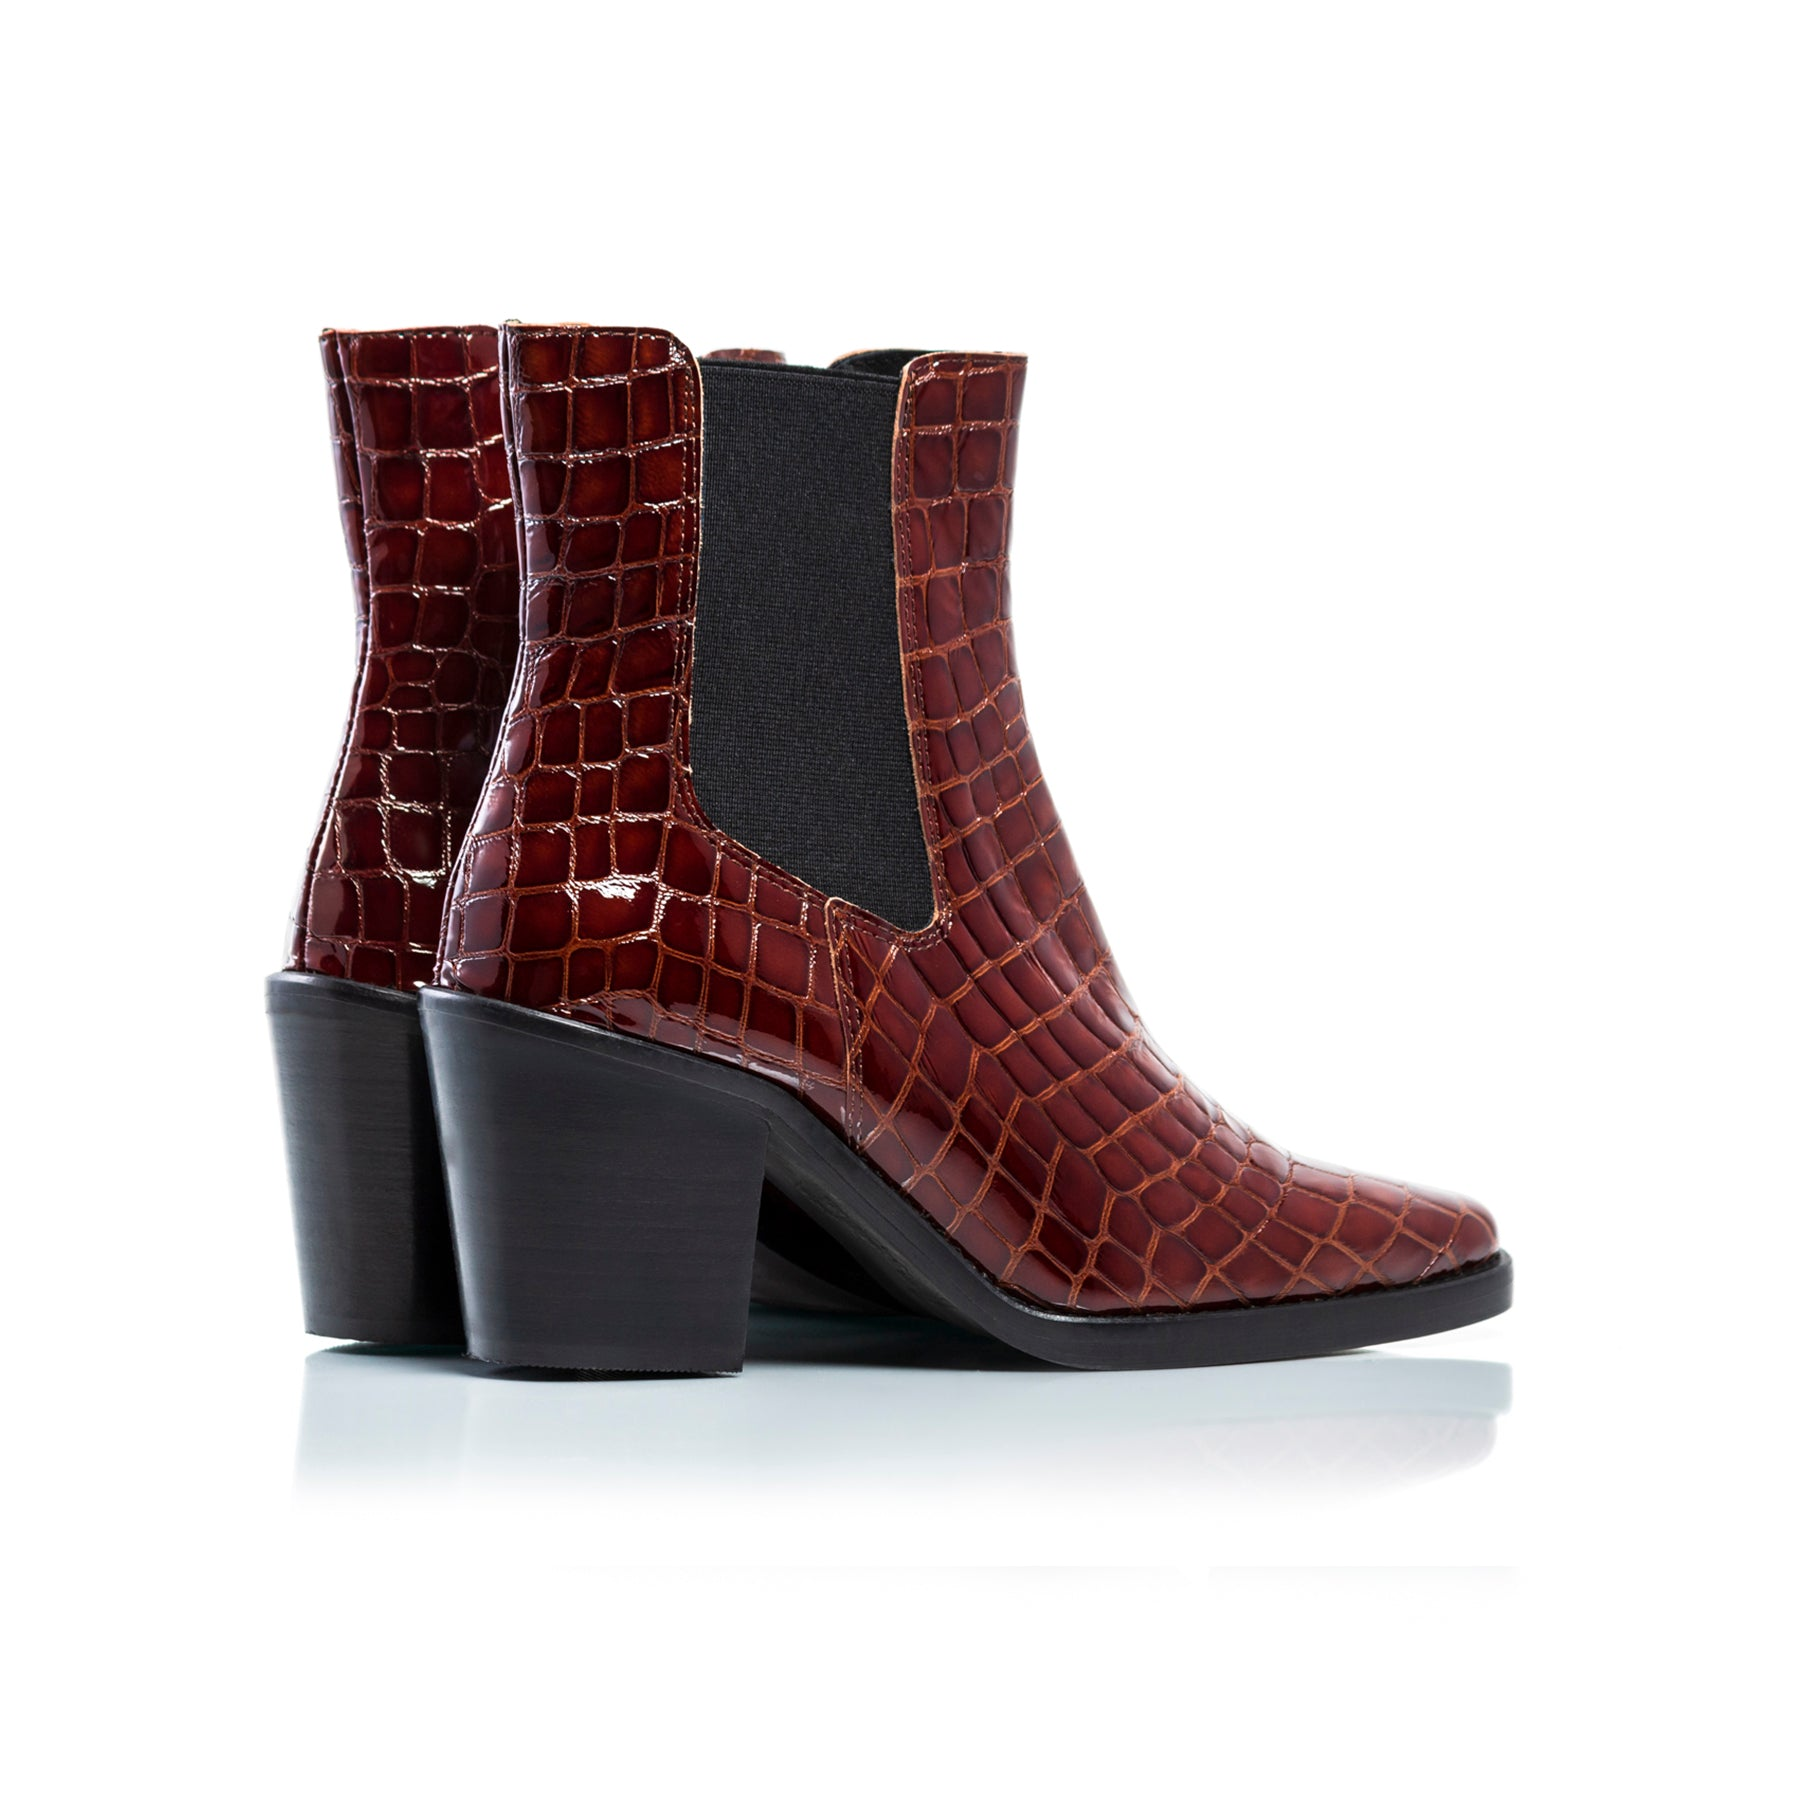 Kentucky Brown Croco Ankle Boots